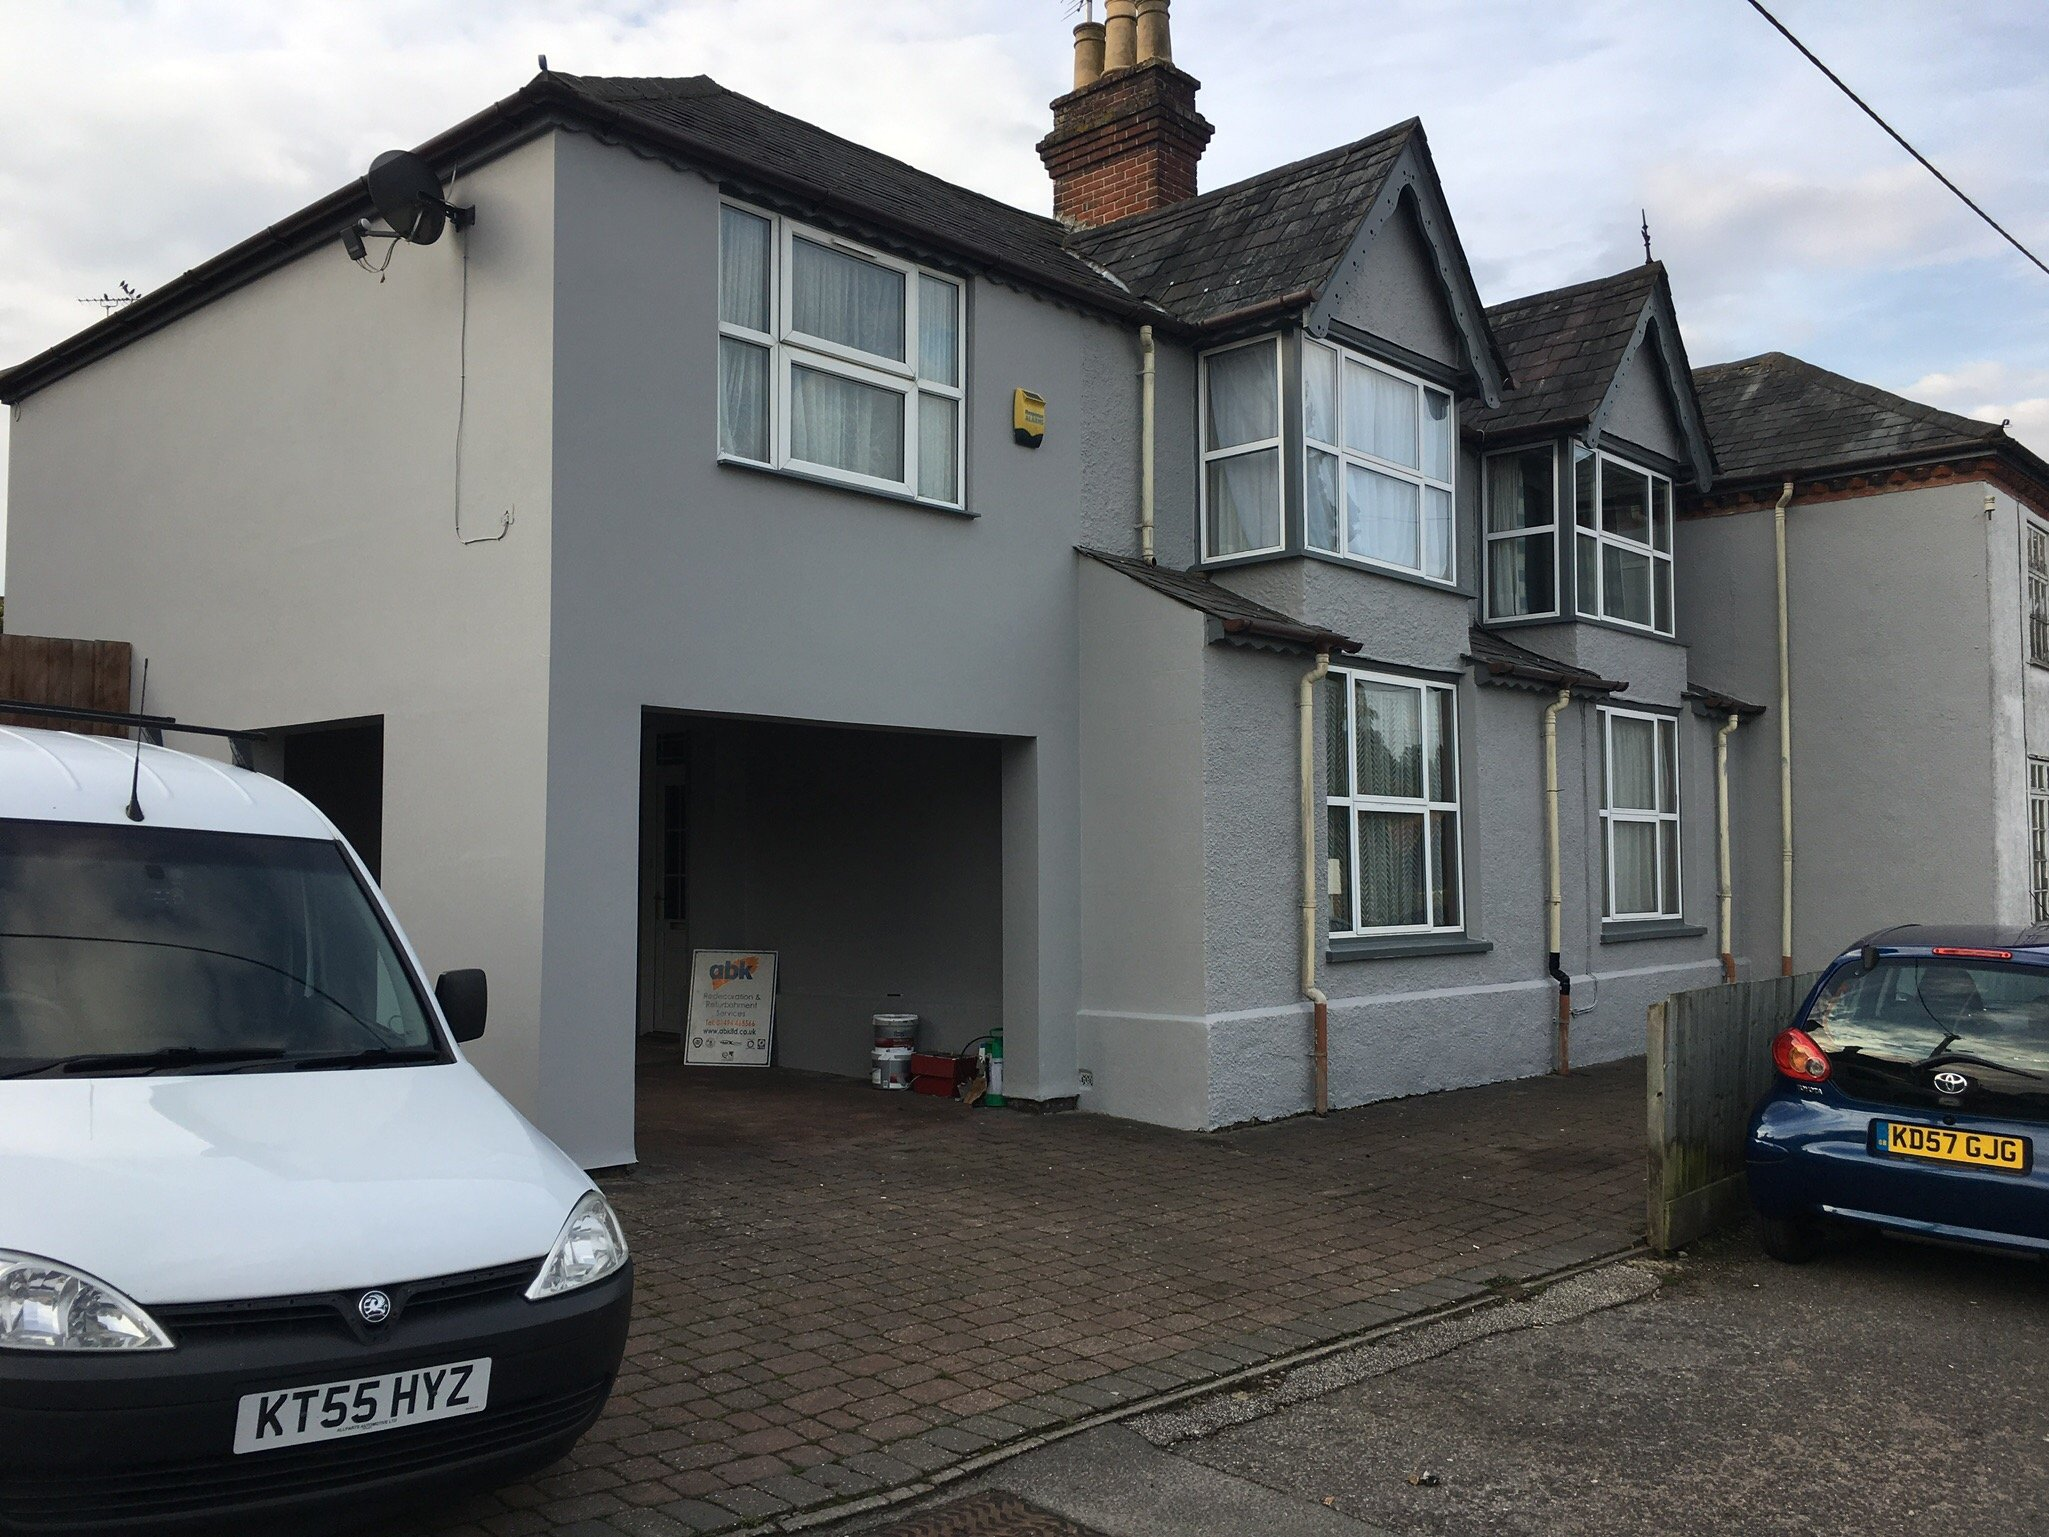 Property in Downley Case Study